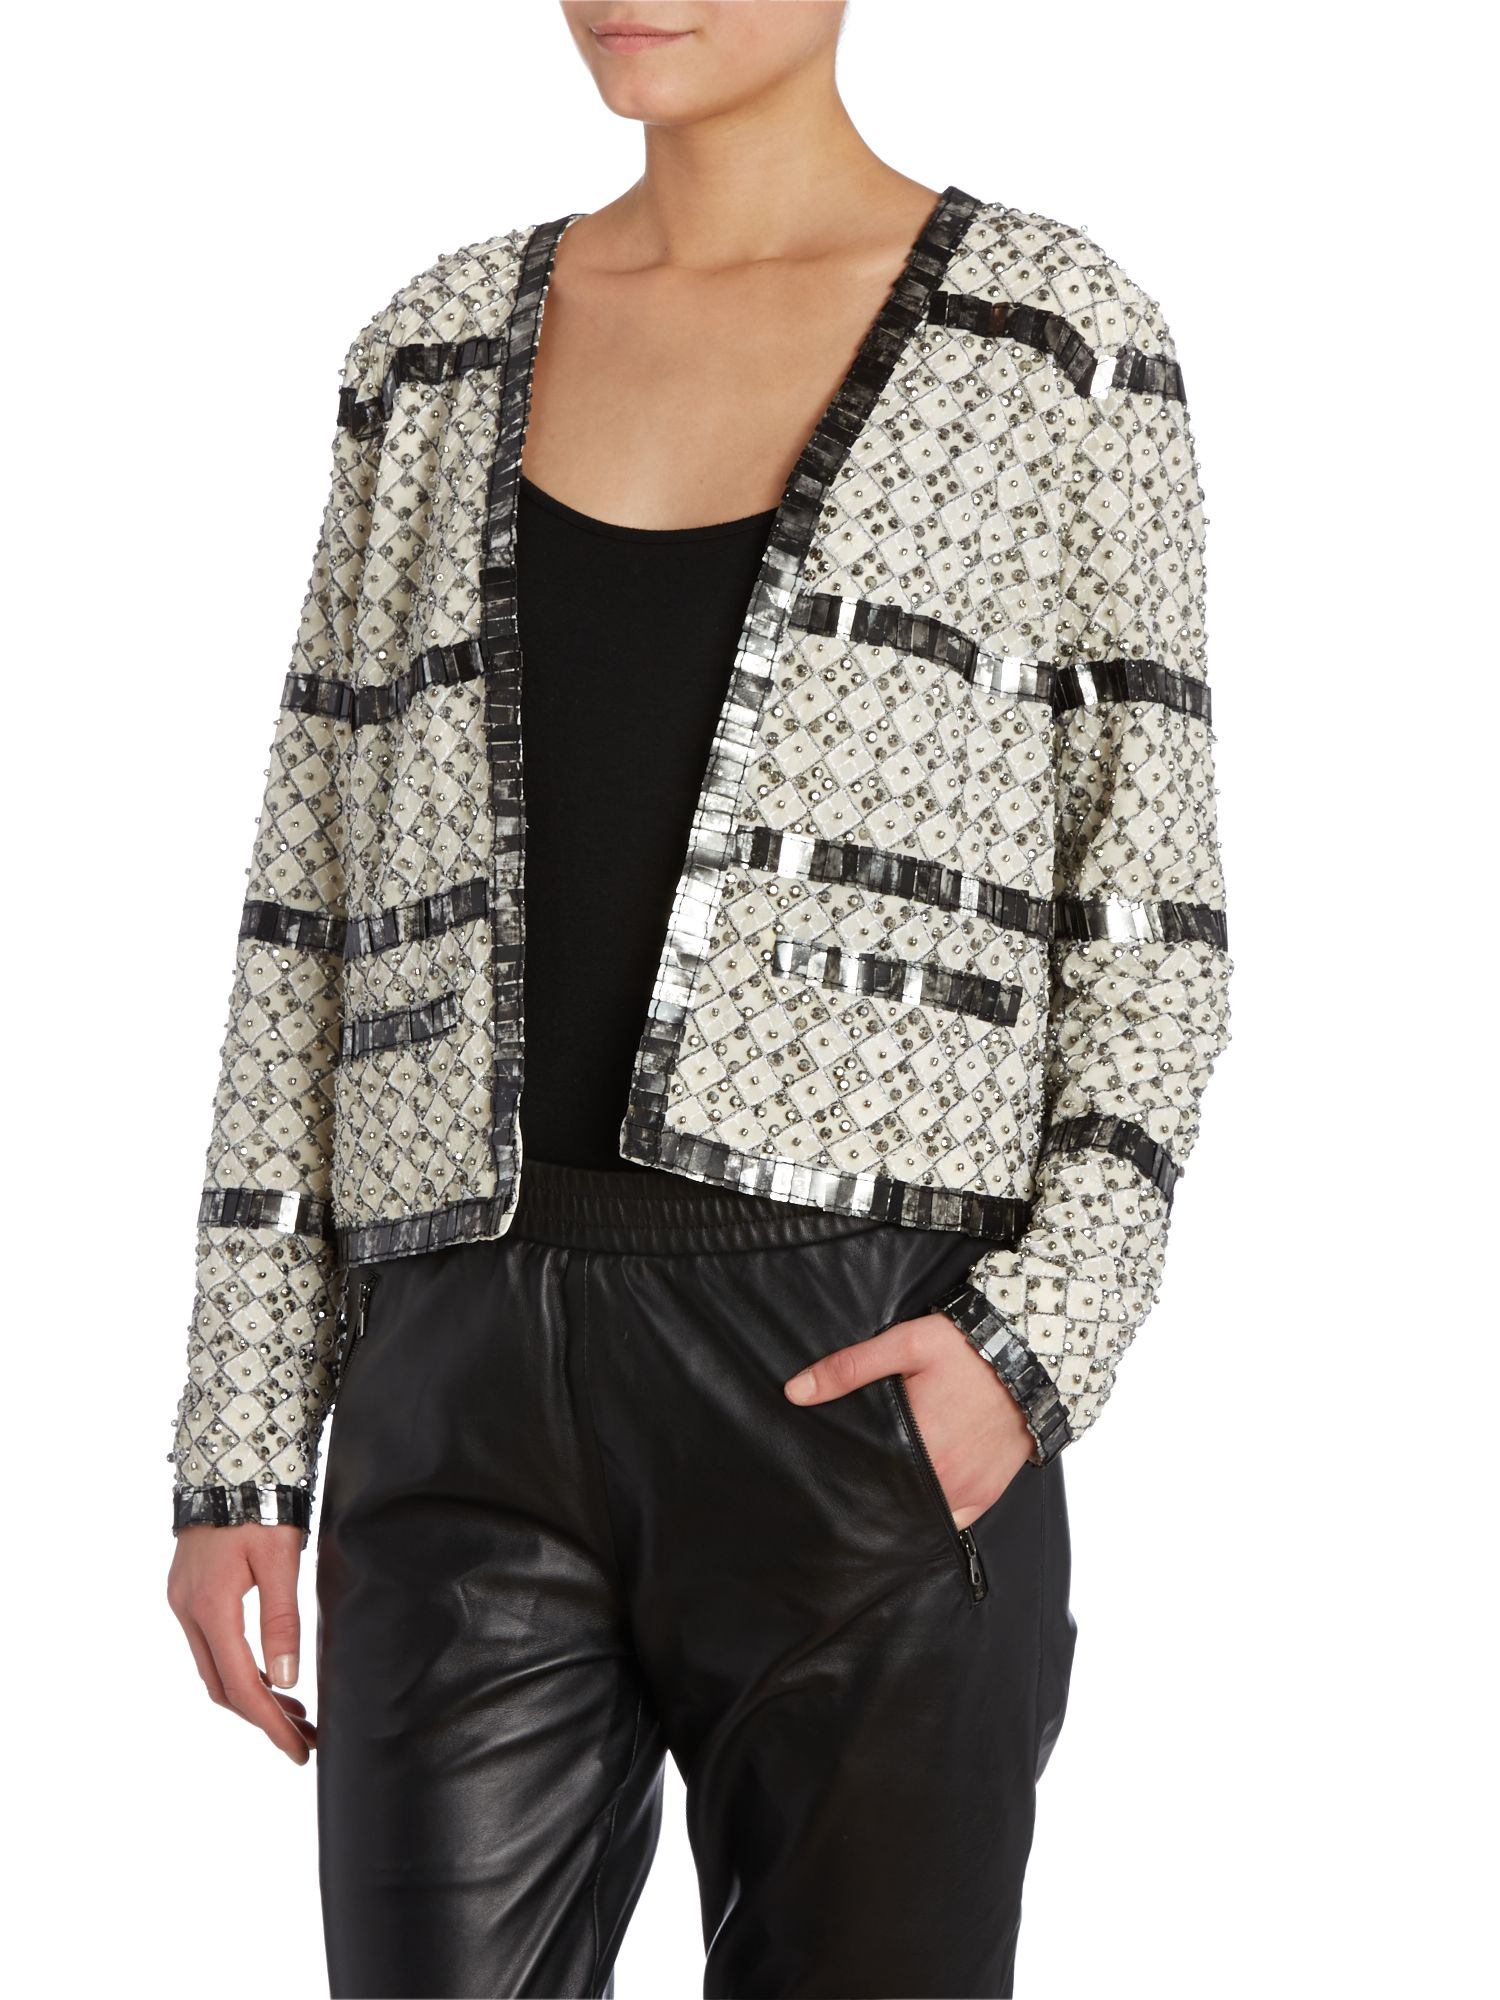 Embellished trophy jacket